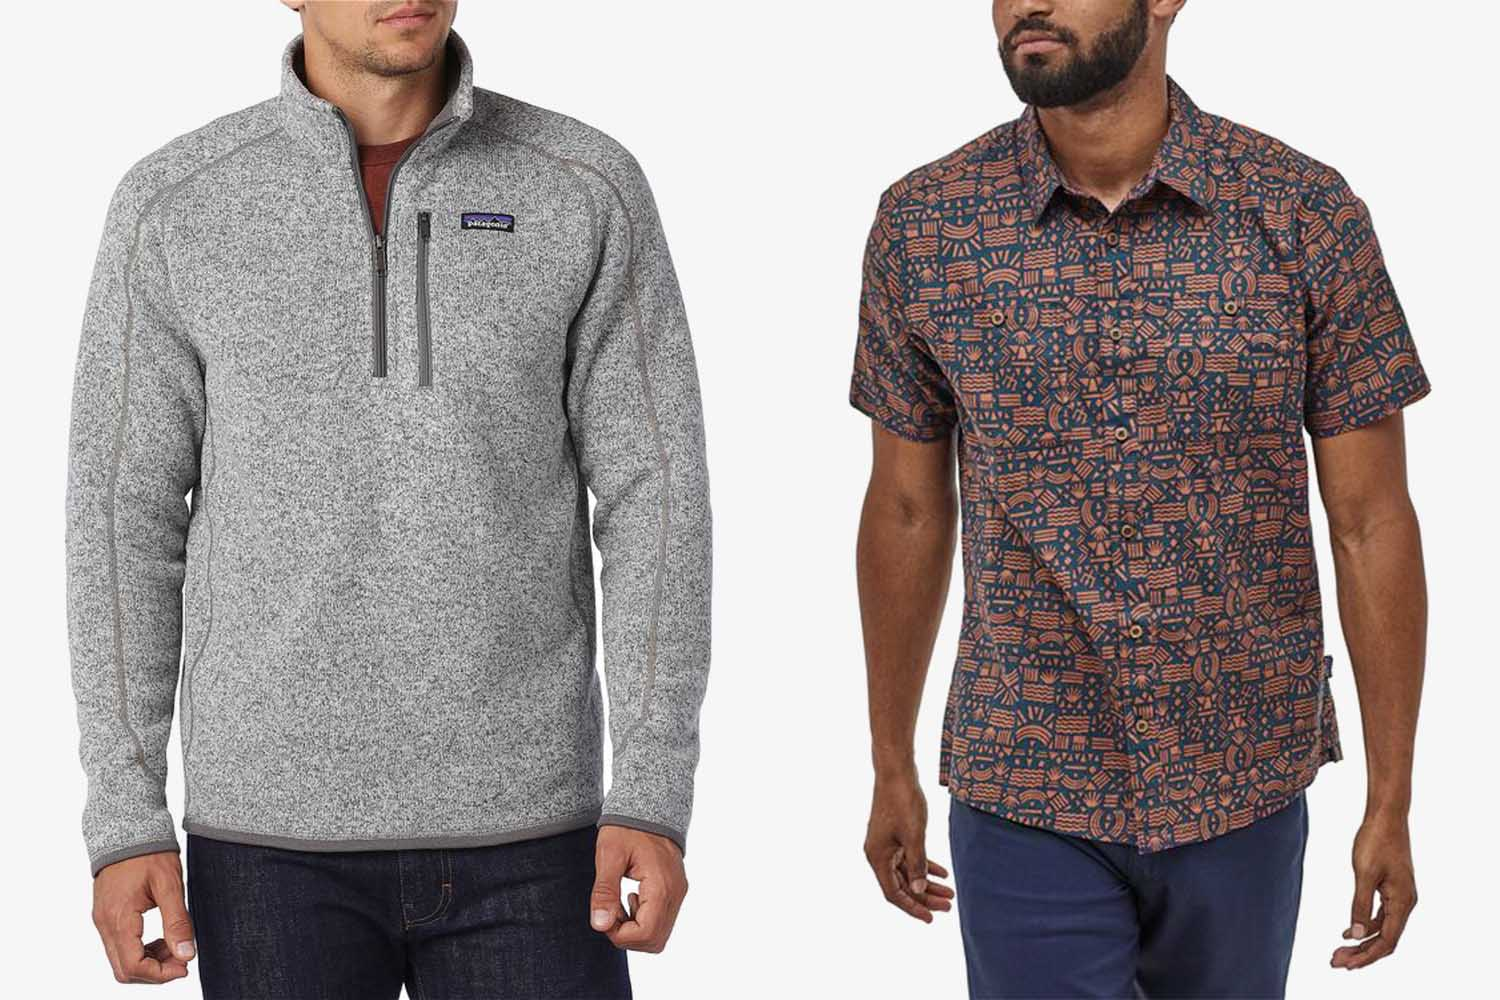 Take Up to 50% Off Patagonia's Past-Season Products